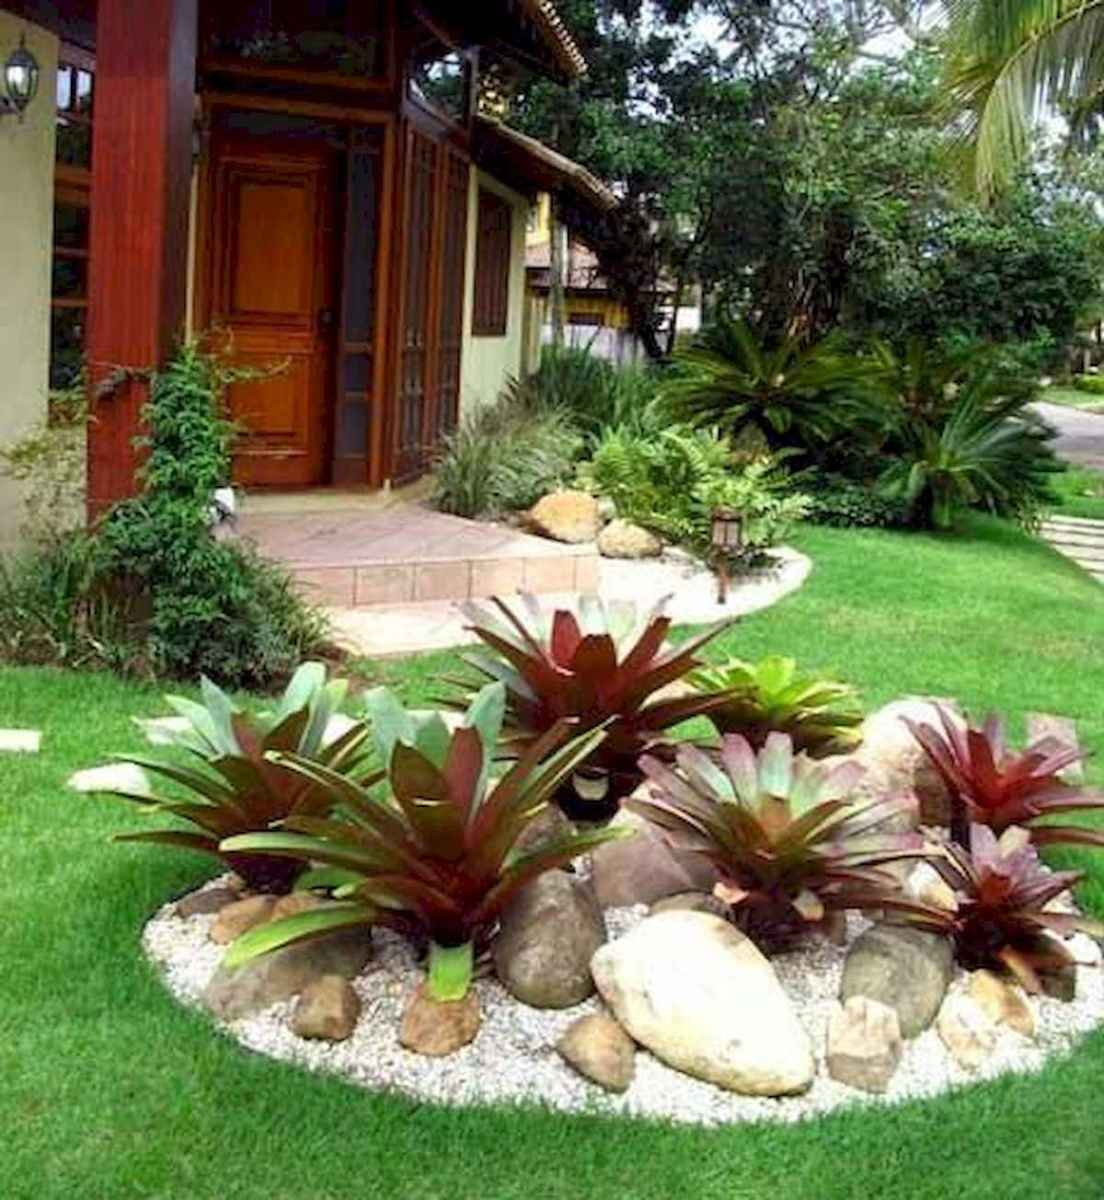 90 Simple and Beautiful Front Yard Landscaping Ideas on A Budget (43)